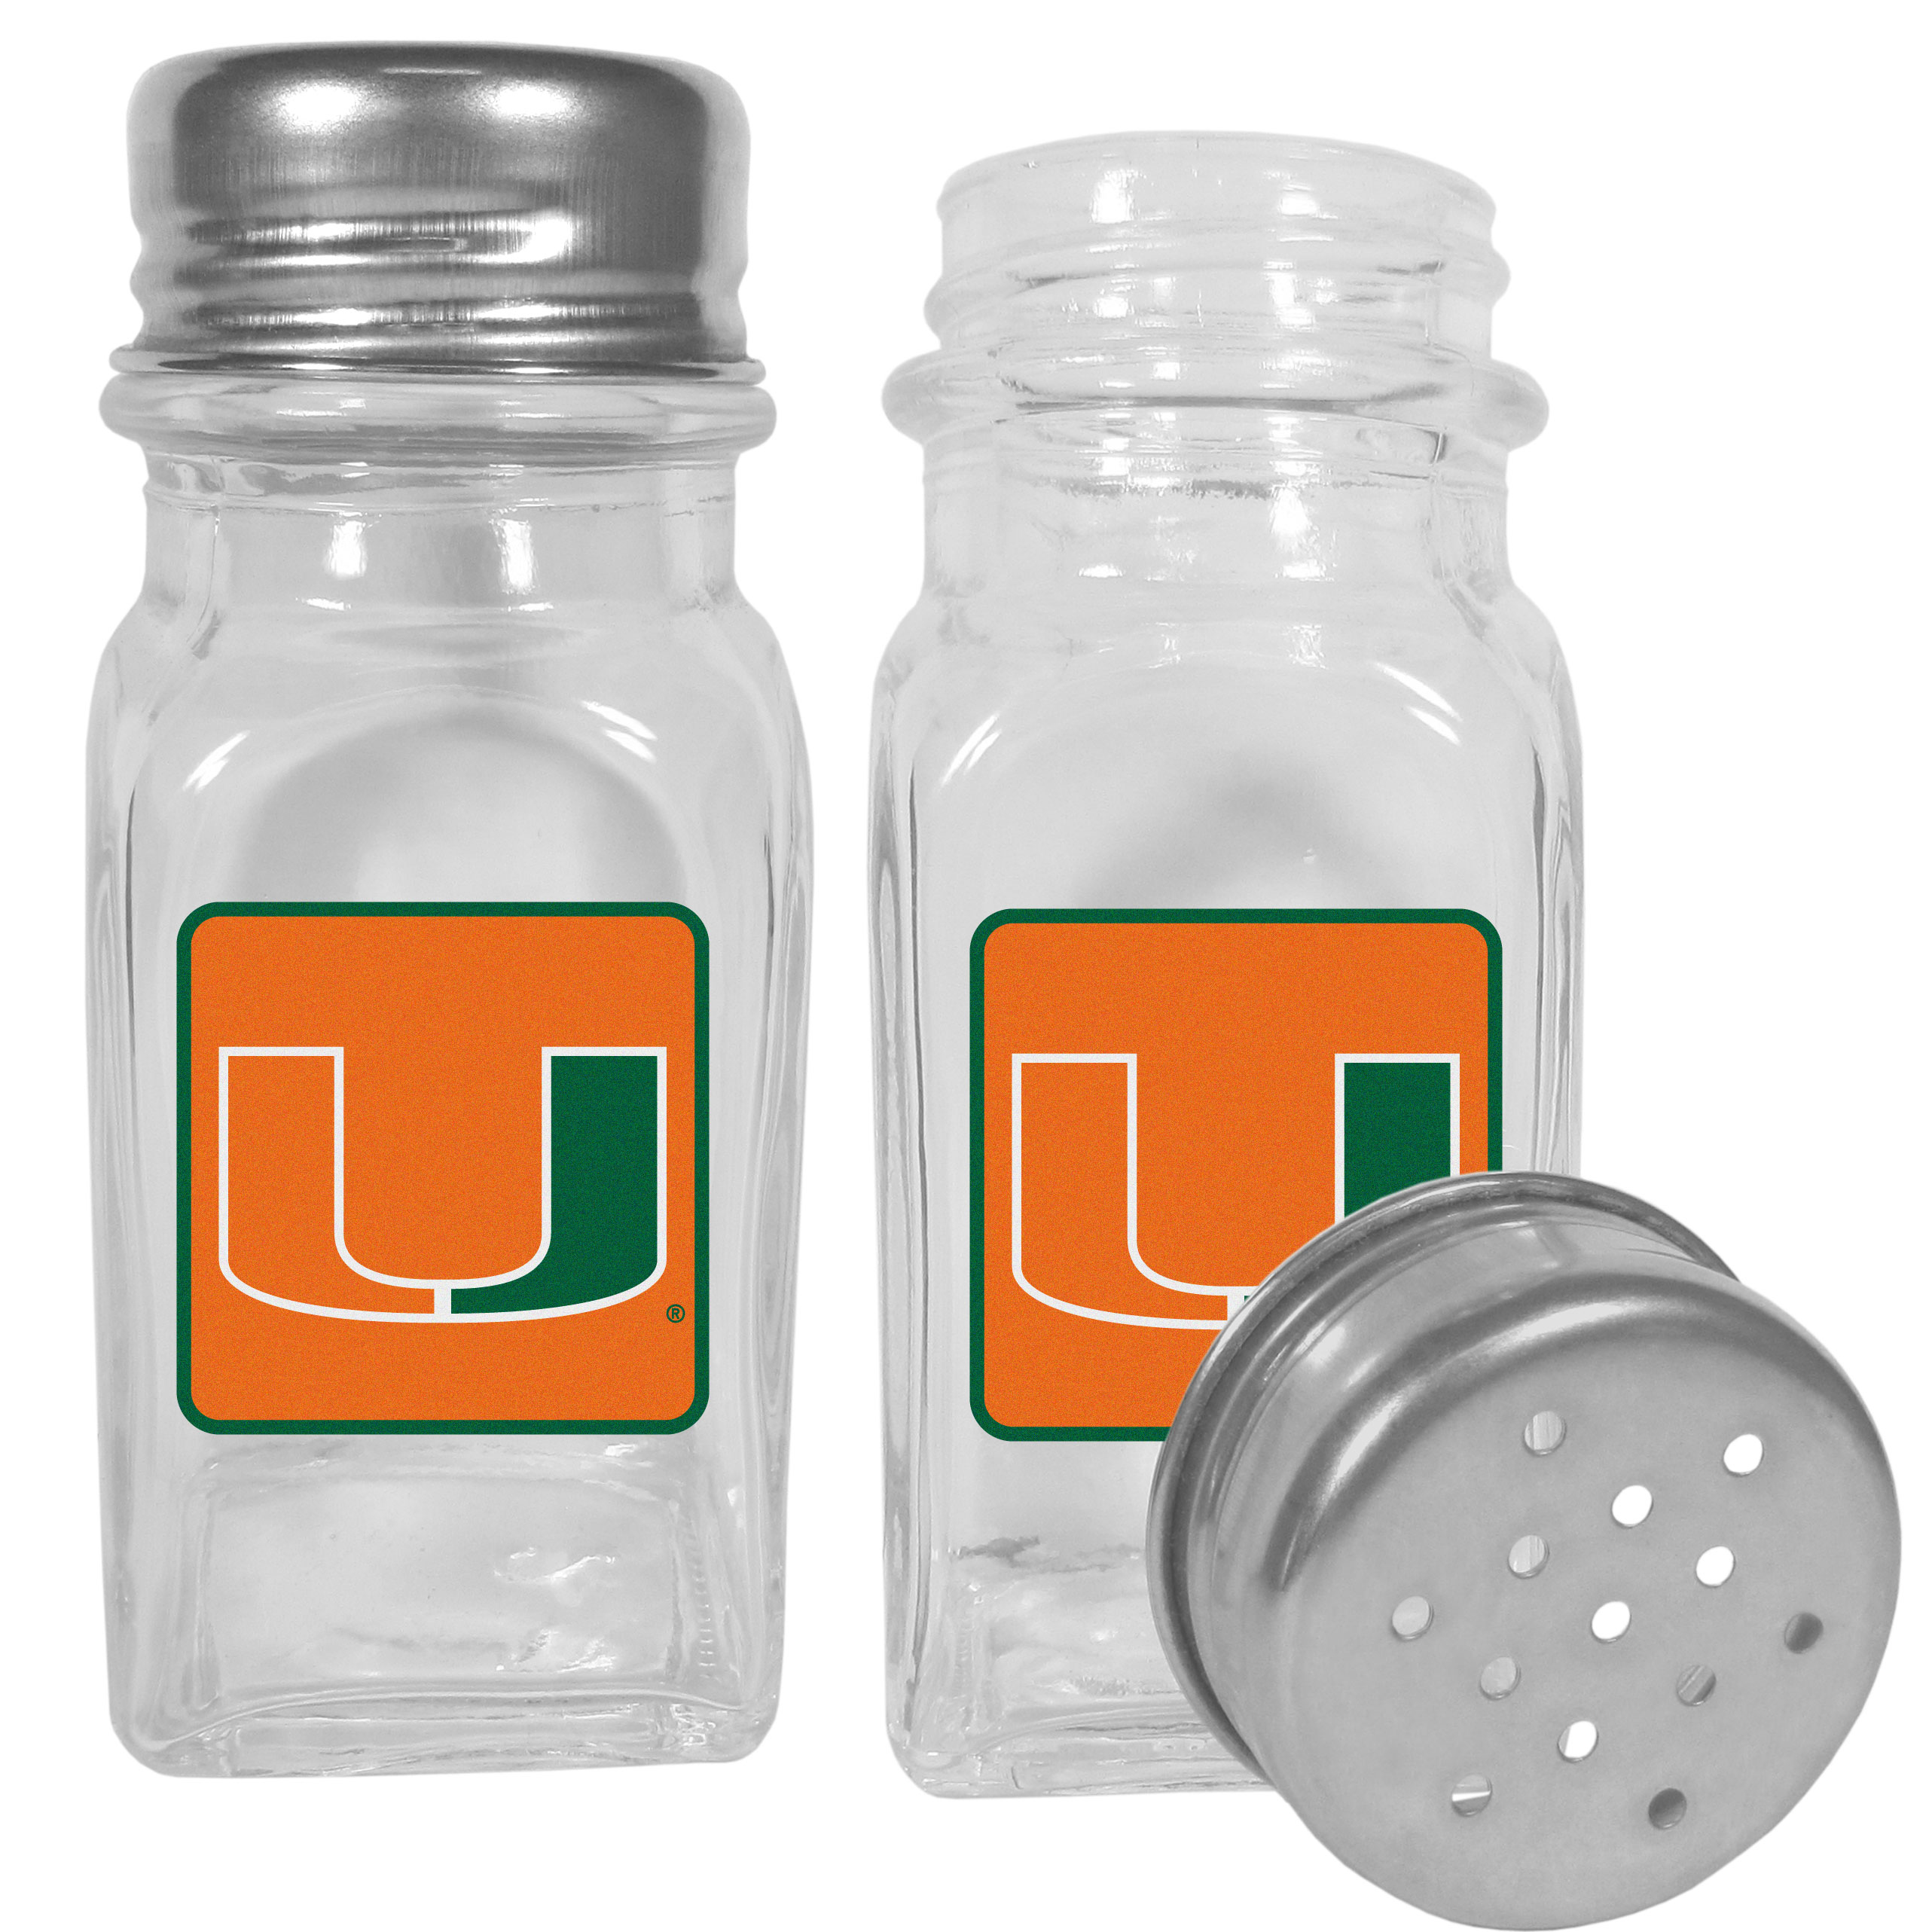 Miami Hurricanes Graphics Salt and Pepper Shaker - No tailgate party is complete without your Miami Hurricanes salt & pepper shakers featuring bright team logos. The diner replica salt and pepper shakers are glass with screw top lids. These team shakers are a great grill accessory whether you are barbecuing on the patio, picnicing or having a game day party.